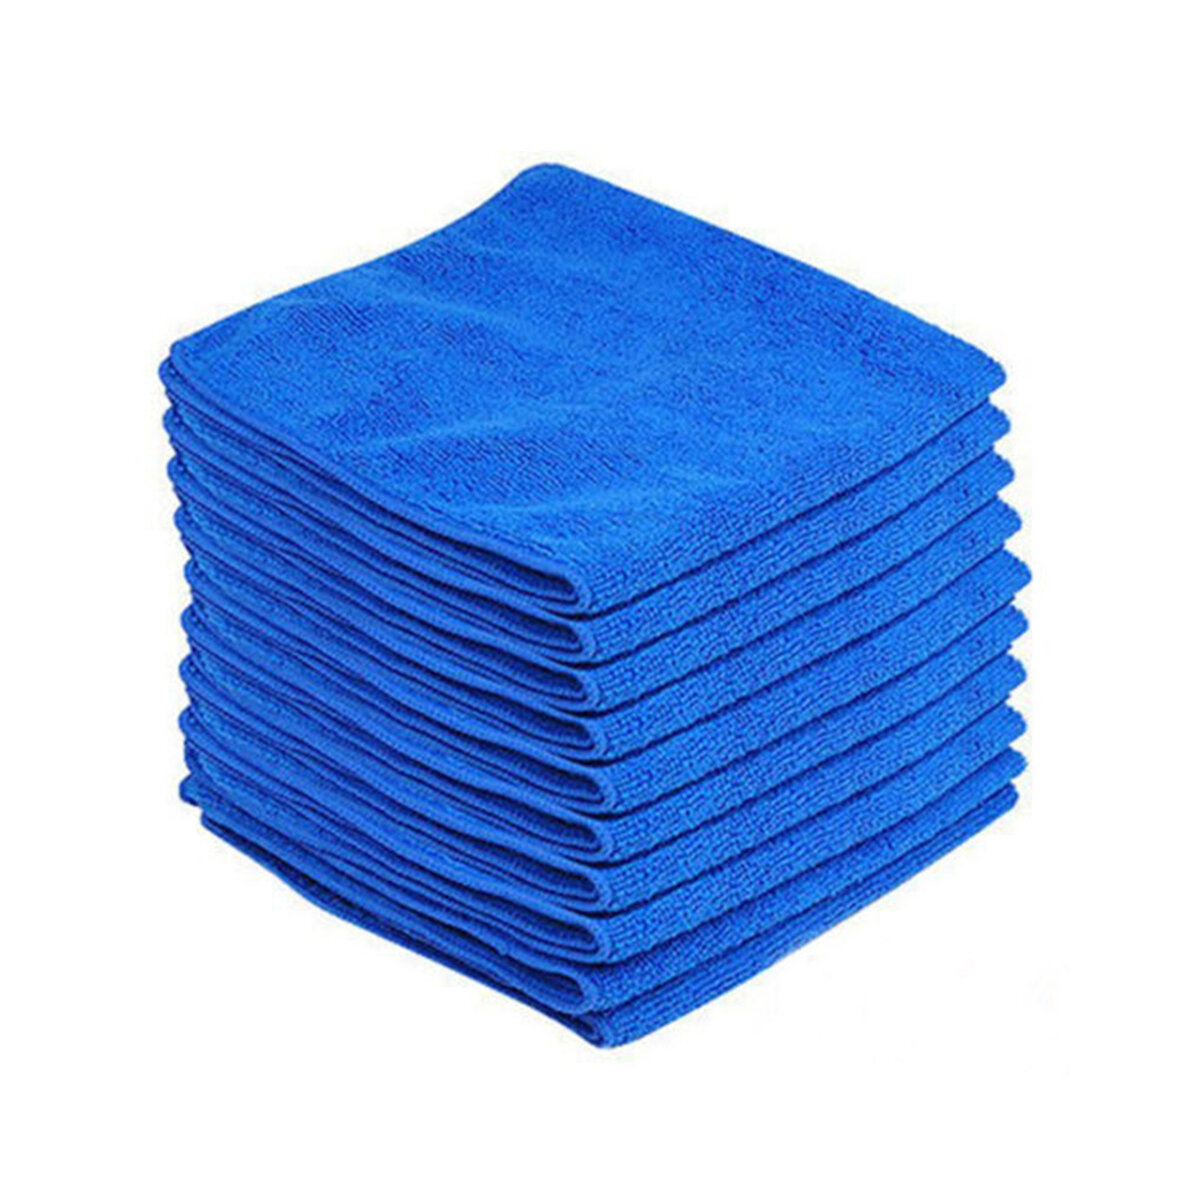 100 Pcs Microfiber Cleaning Cloth 14*14 Dust Wash Glasses Cloth Auto Detailing Glass Watch Jewelry Diy Lcd Led Tv Lens Cloth With The Best Service Eyewear Accessories